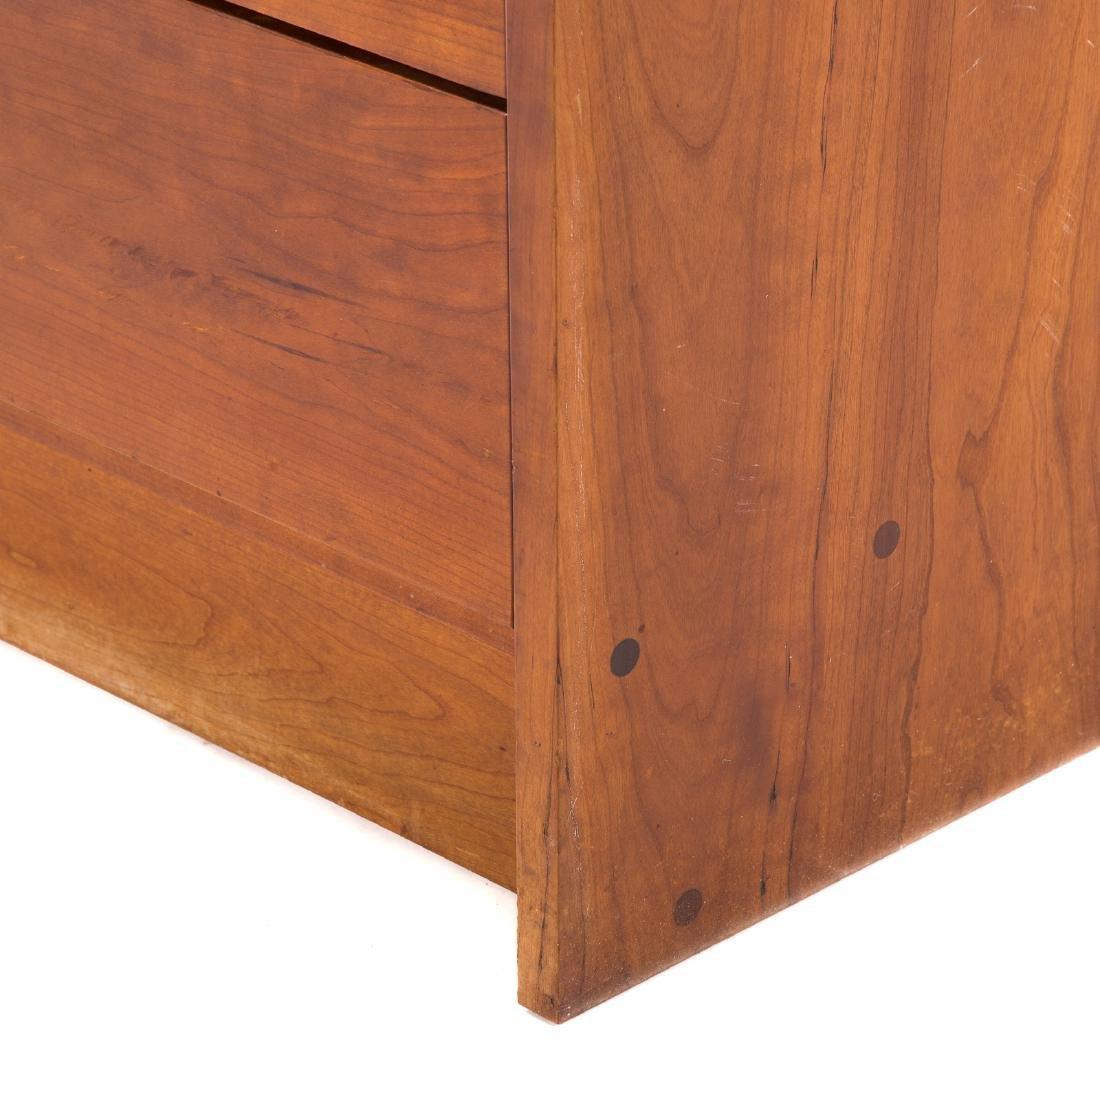 George Nakashima Custom Chest - 6